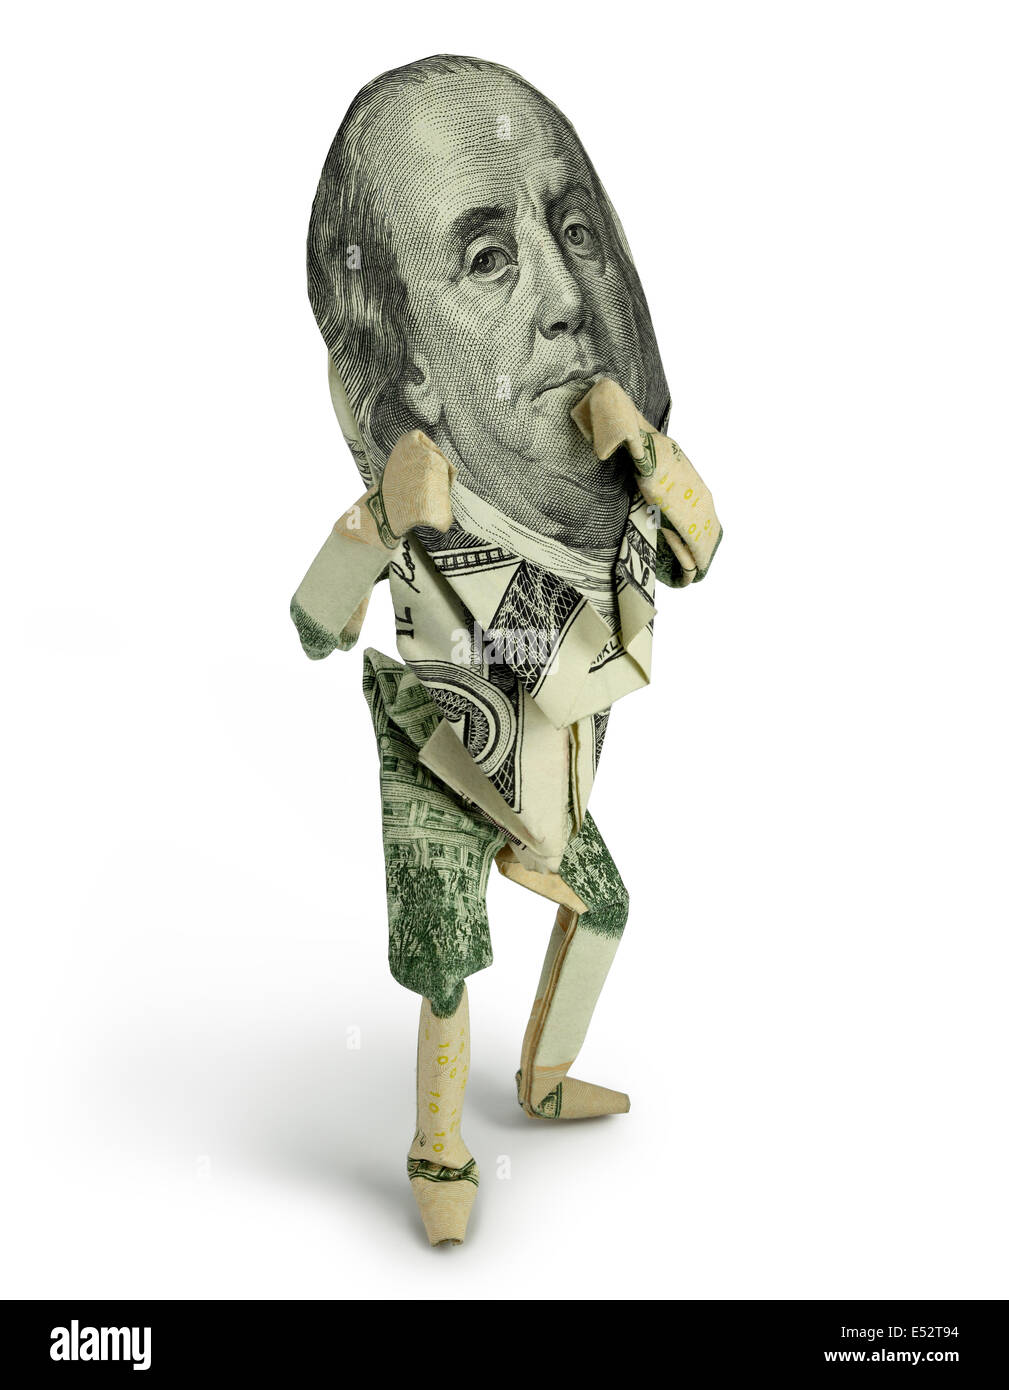 Origami Human Figure Posed With Fists Up On Pure White Background Featuring Ben Franklins Face From The 100 Dollar Bill